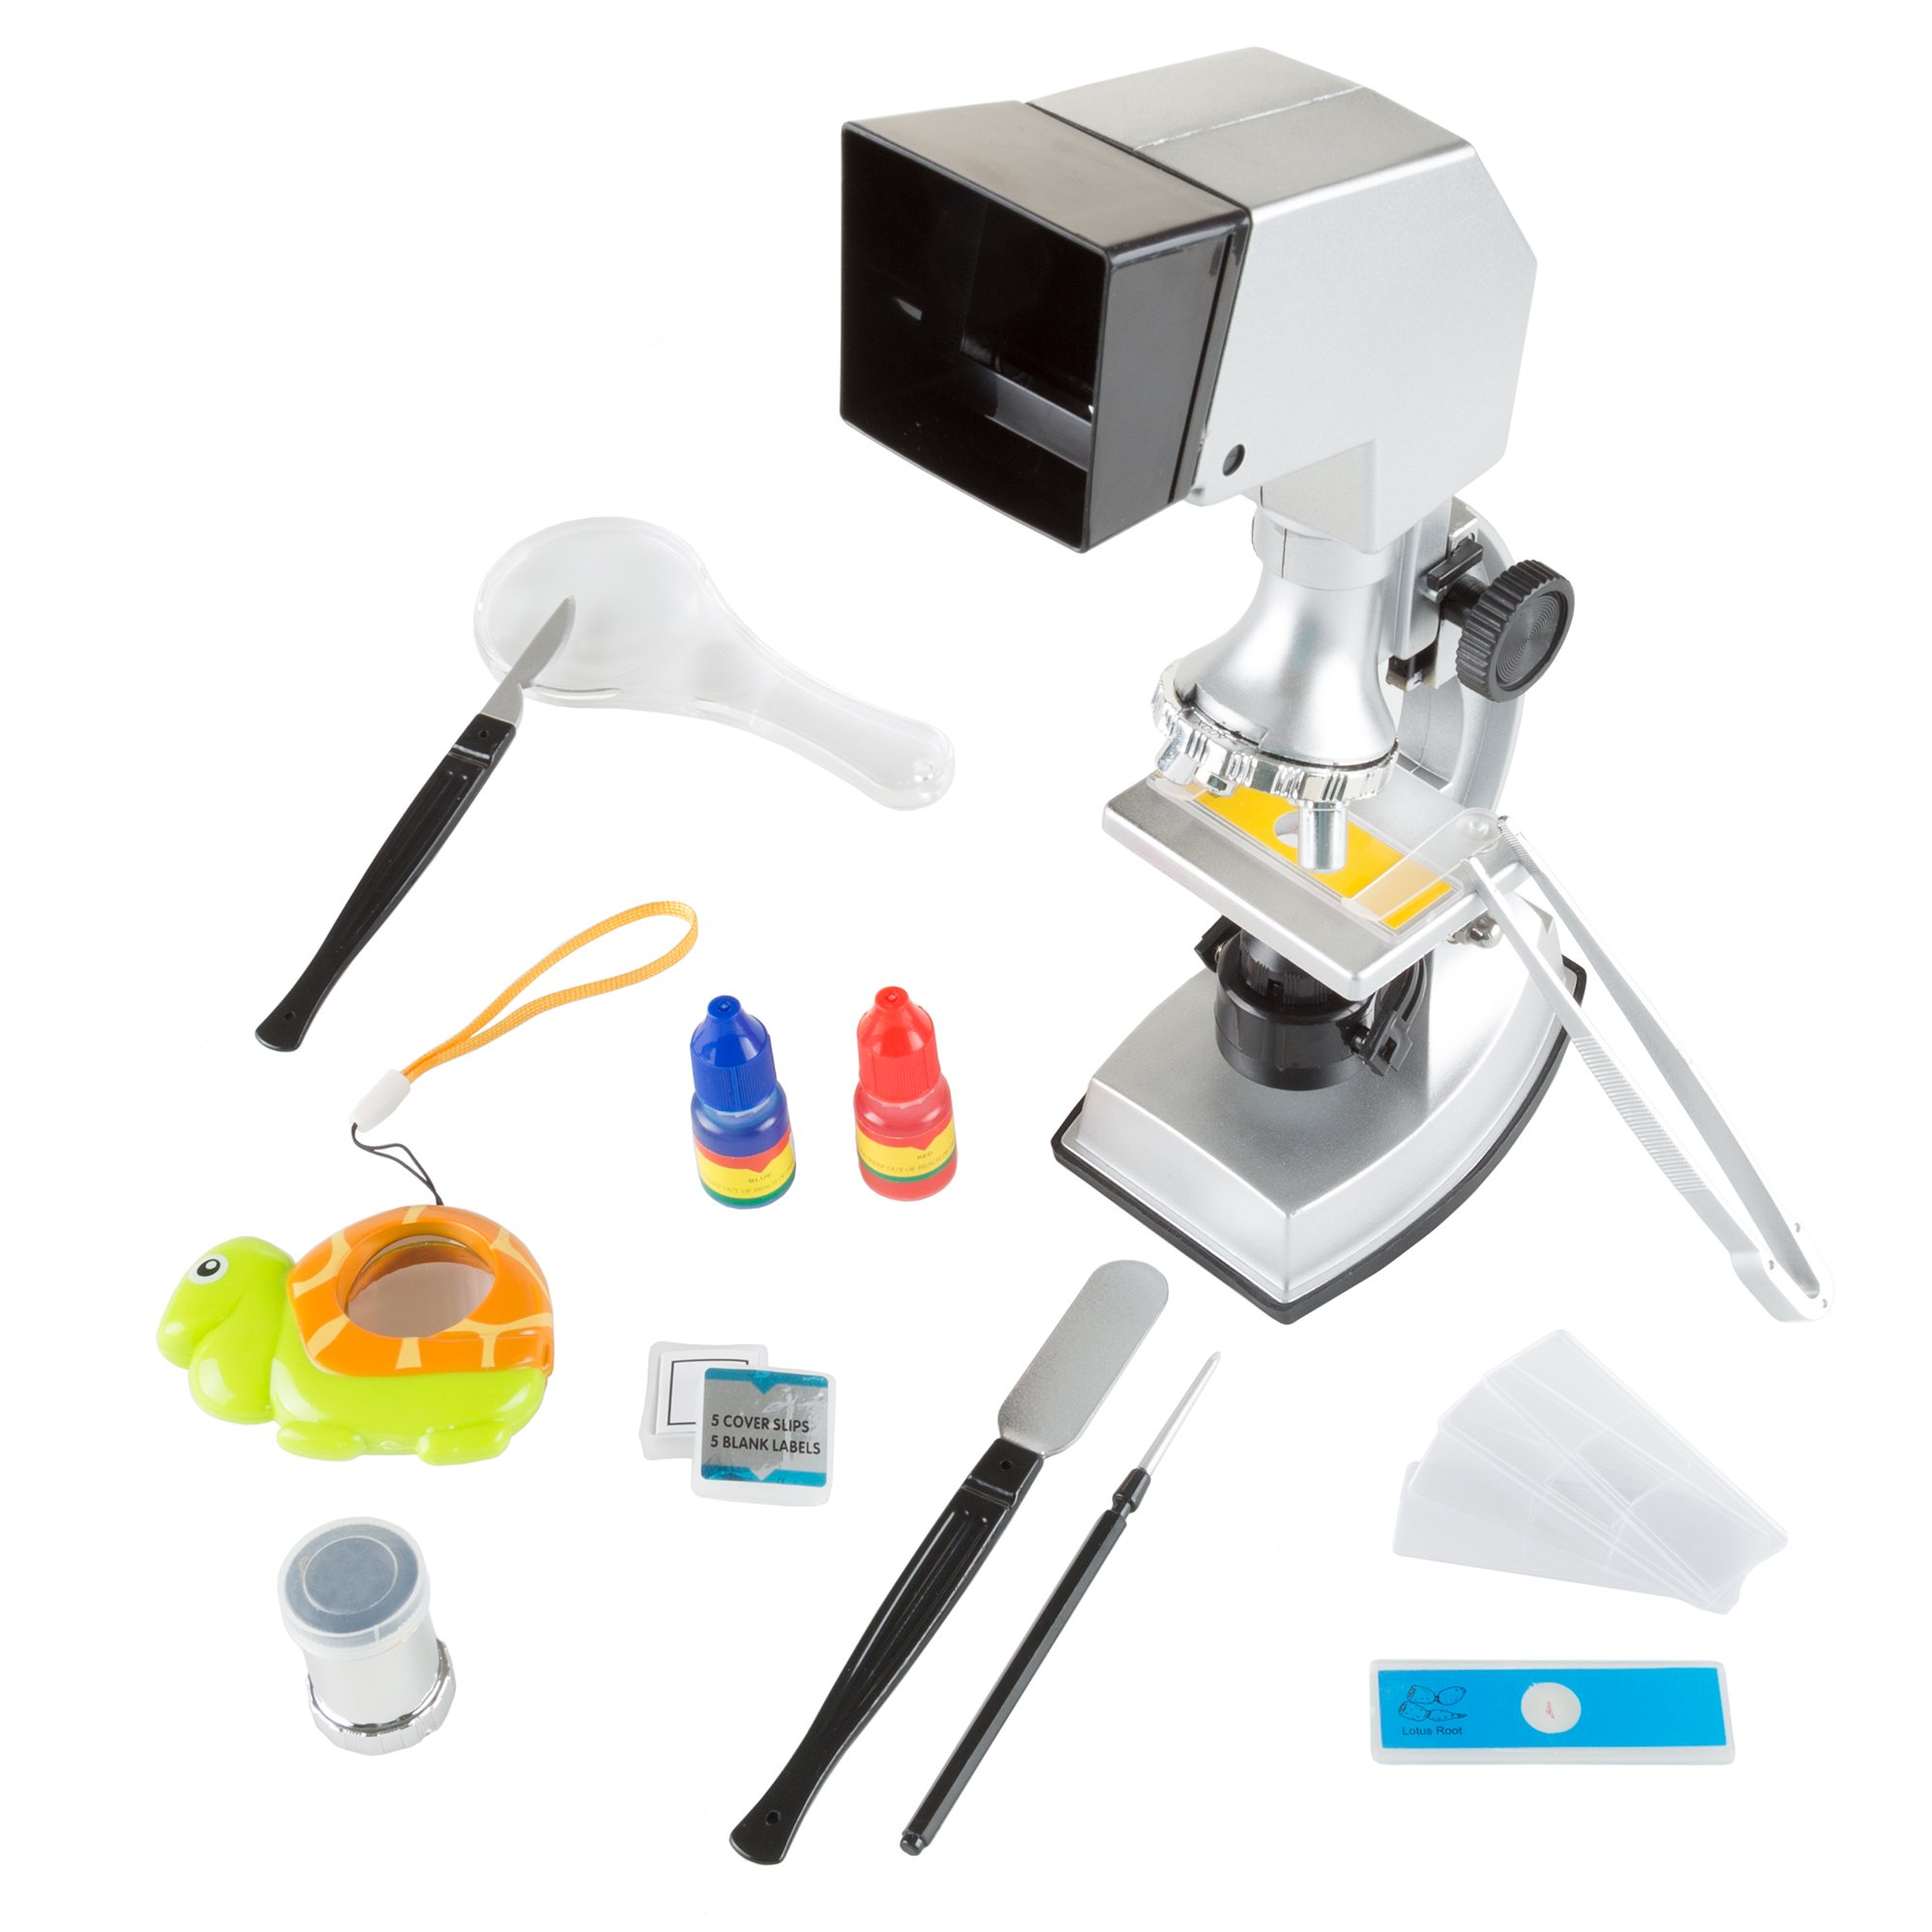 Microscope for Kids, 18 Piece Educational Science Set, 4-Way Magnification form 100x to 900x with Projection Viewing for Boys and Girls by Hey! Play!